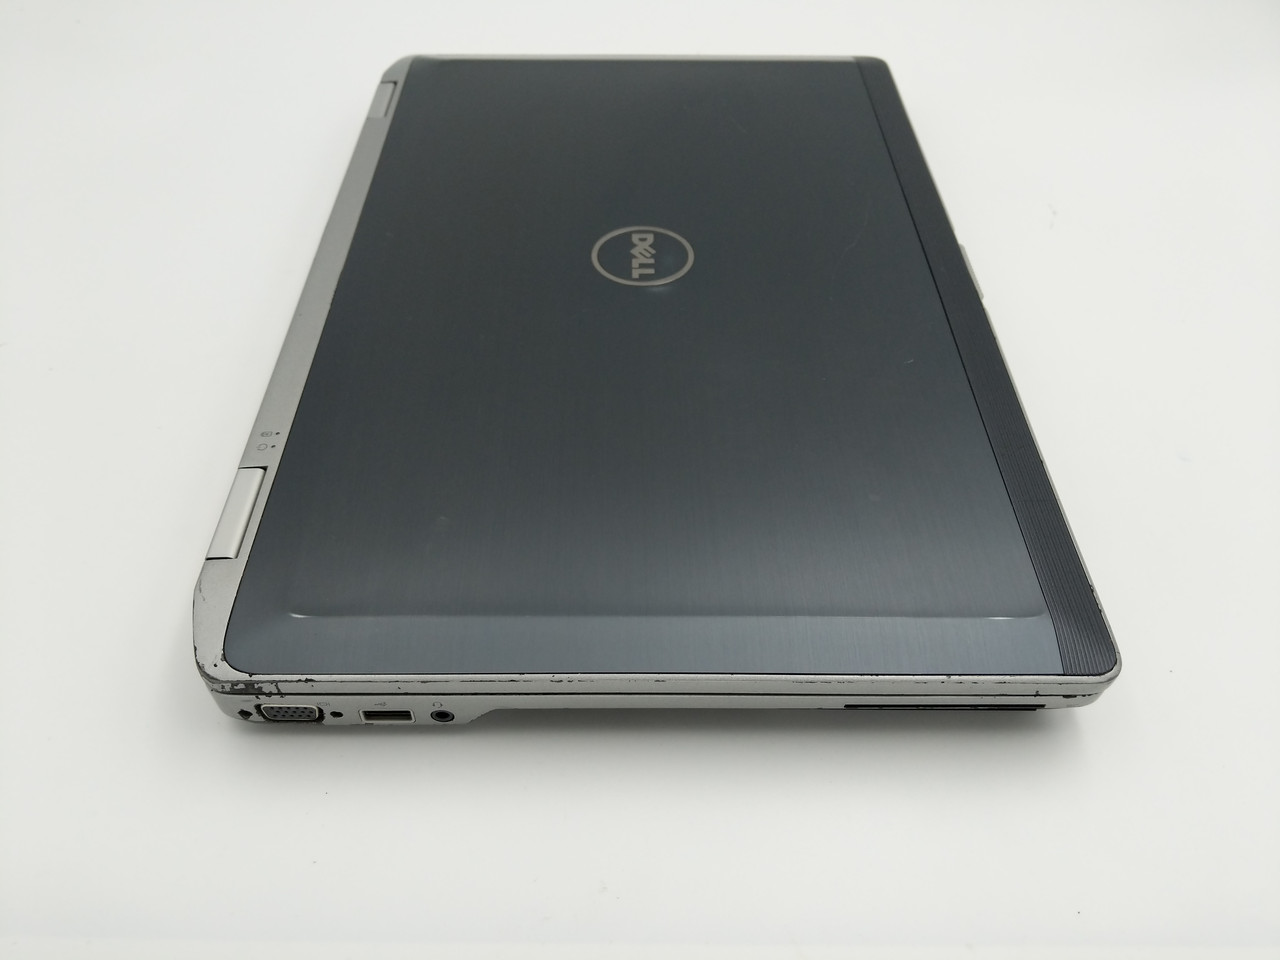 Б/У Dell Latitude E6520 15.6″ i5-2520M /DDR3 8 Gb /SSD 240 Gb / Нет в наличии 7